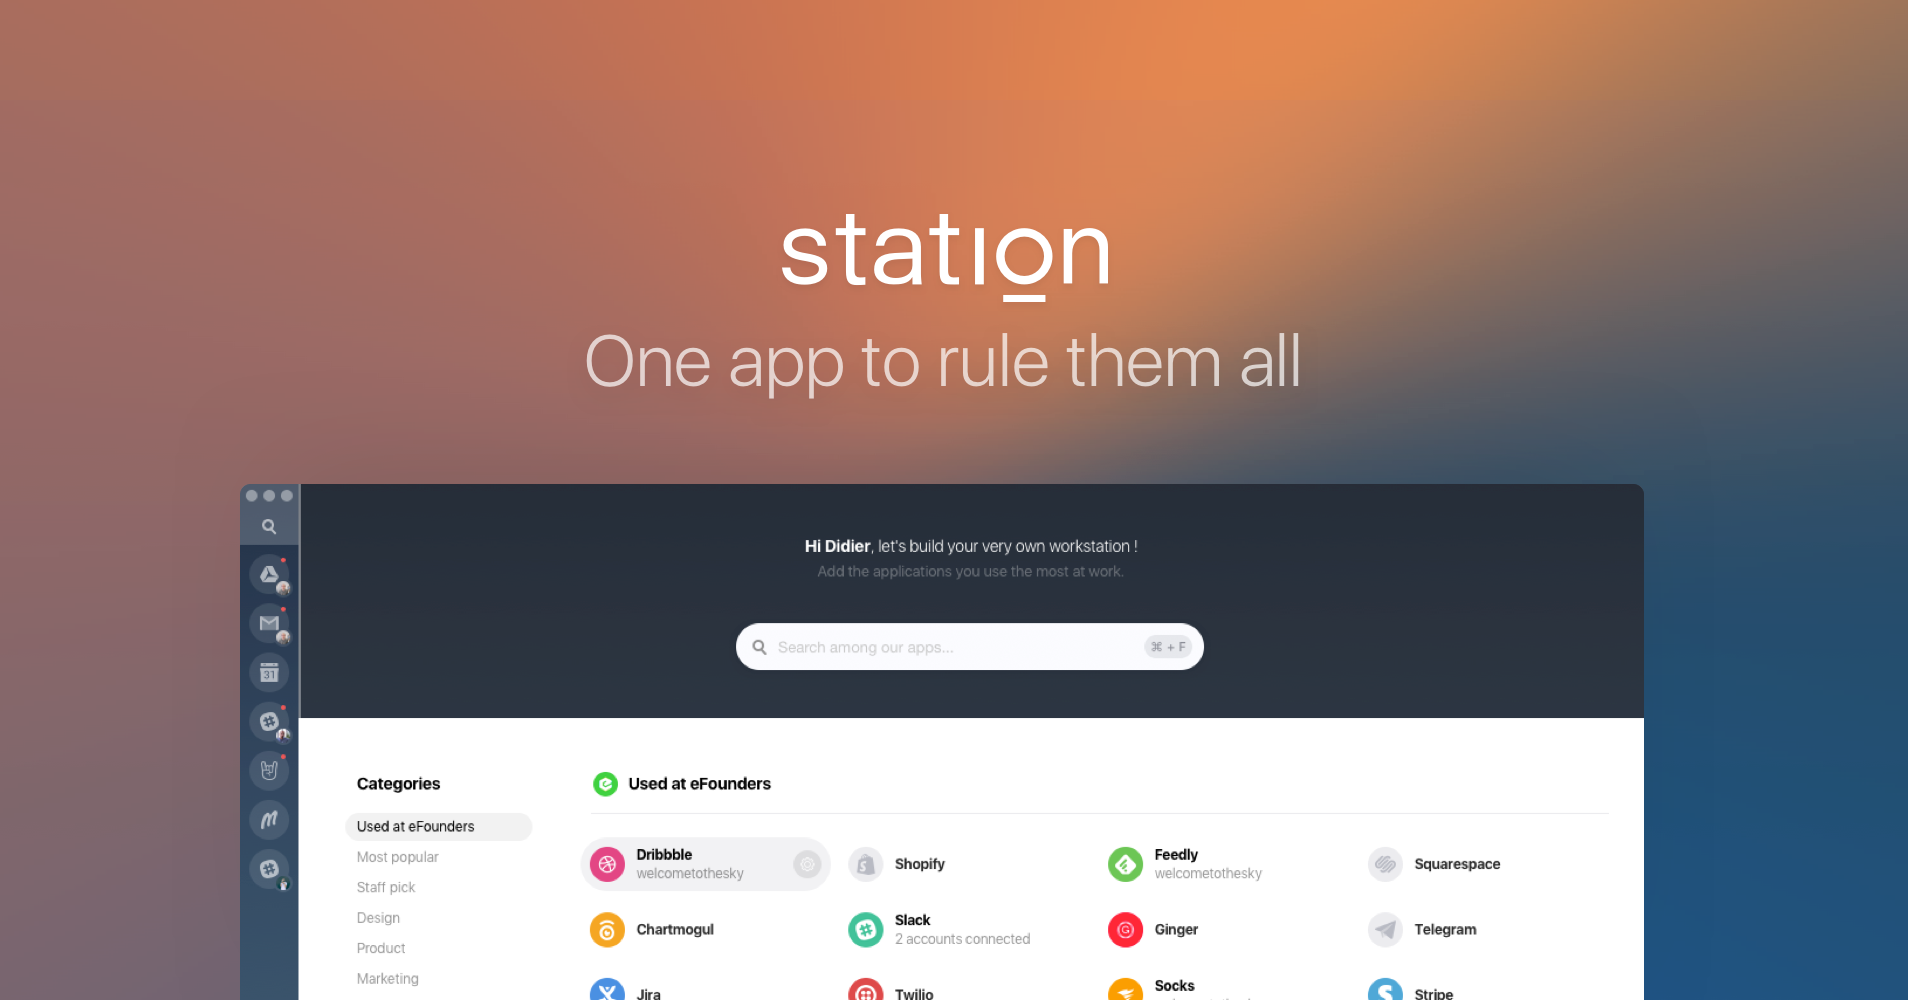 station from getstation.com